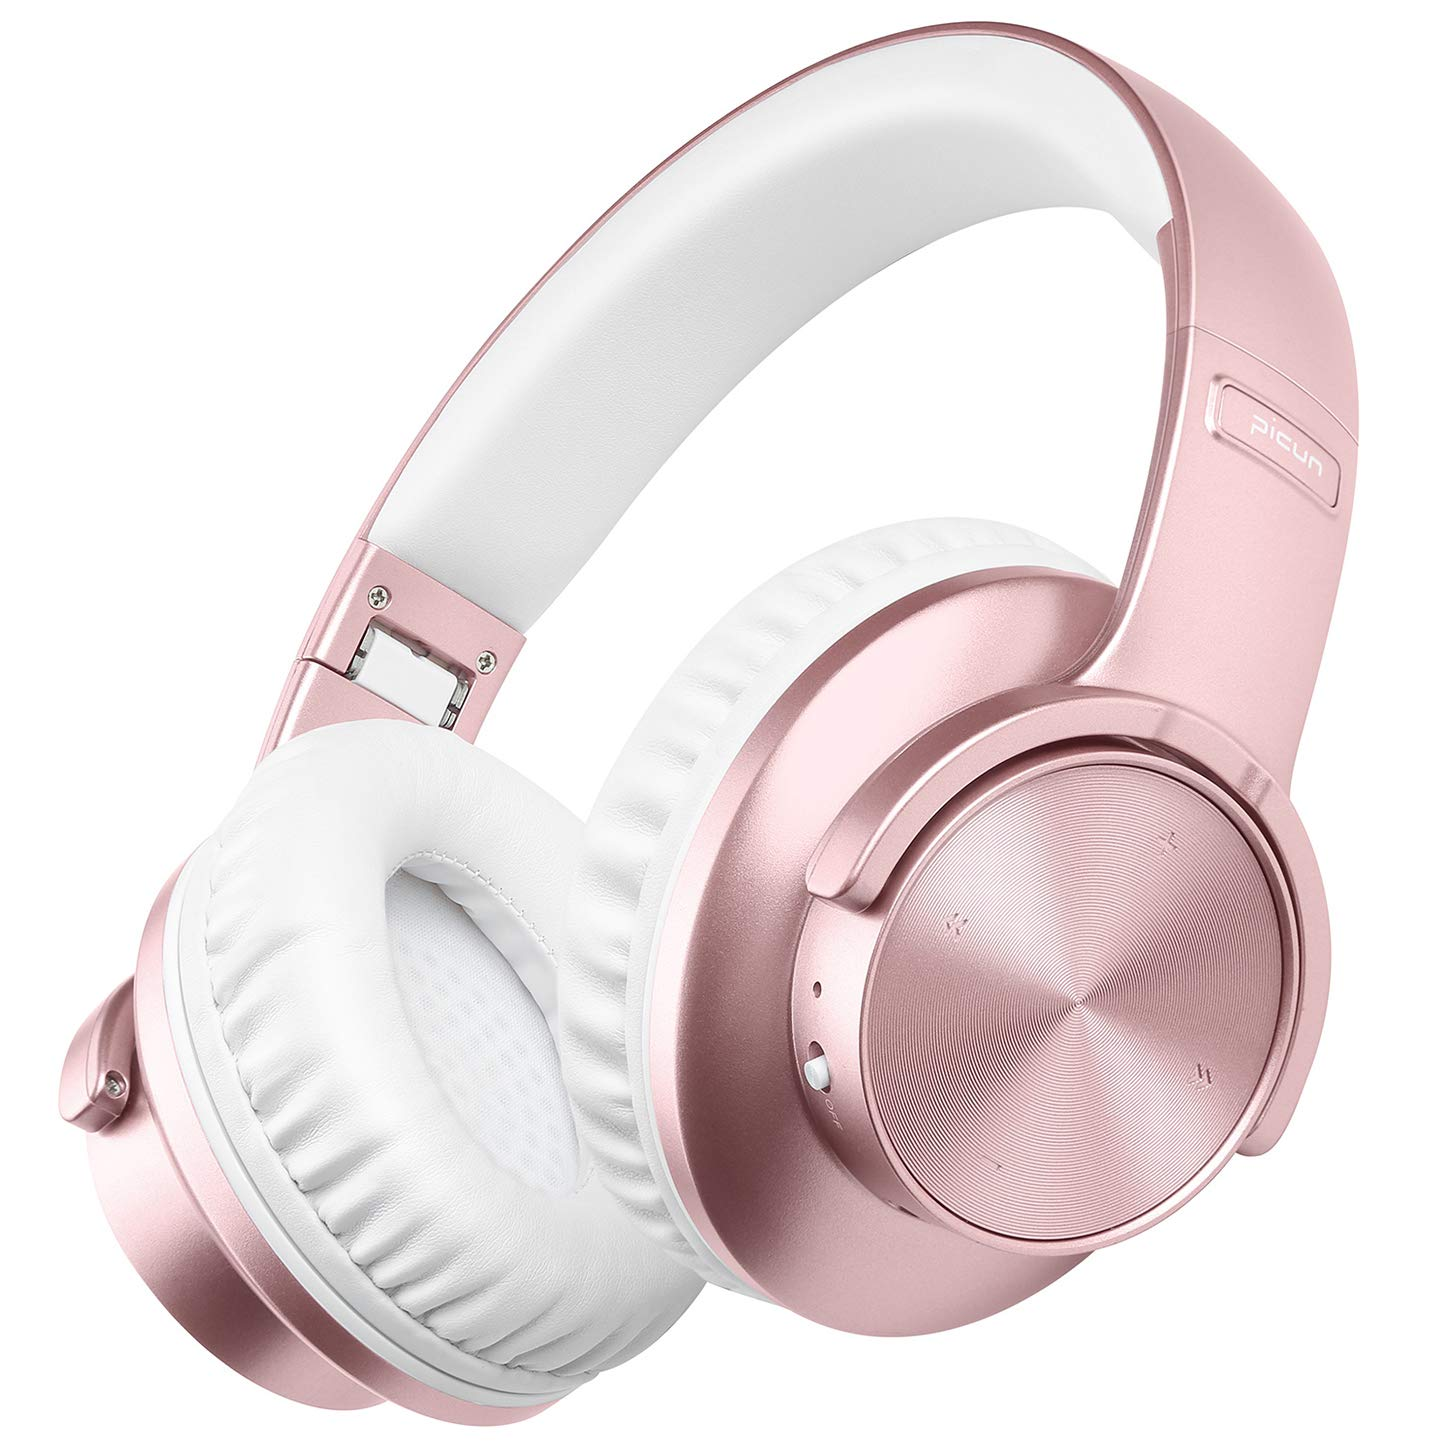 Wireless Headphones Over Ear, Picun 40 Hrs Bluetooth Headphones for Girls Women, Touch Control, Soft Protein Earpads, Hi-Fi Deep Bass Bluetooth 5.0 Headsets w Mic, Wired Mode Travel Work – Rose Gold